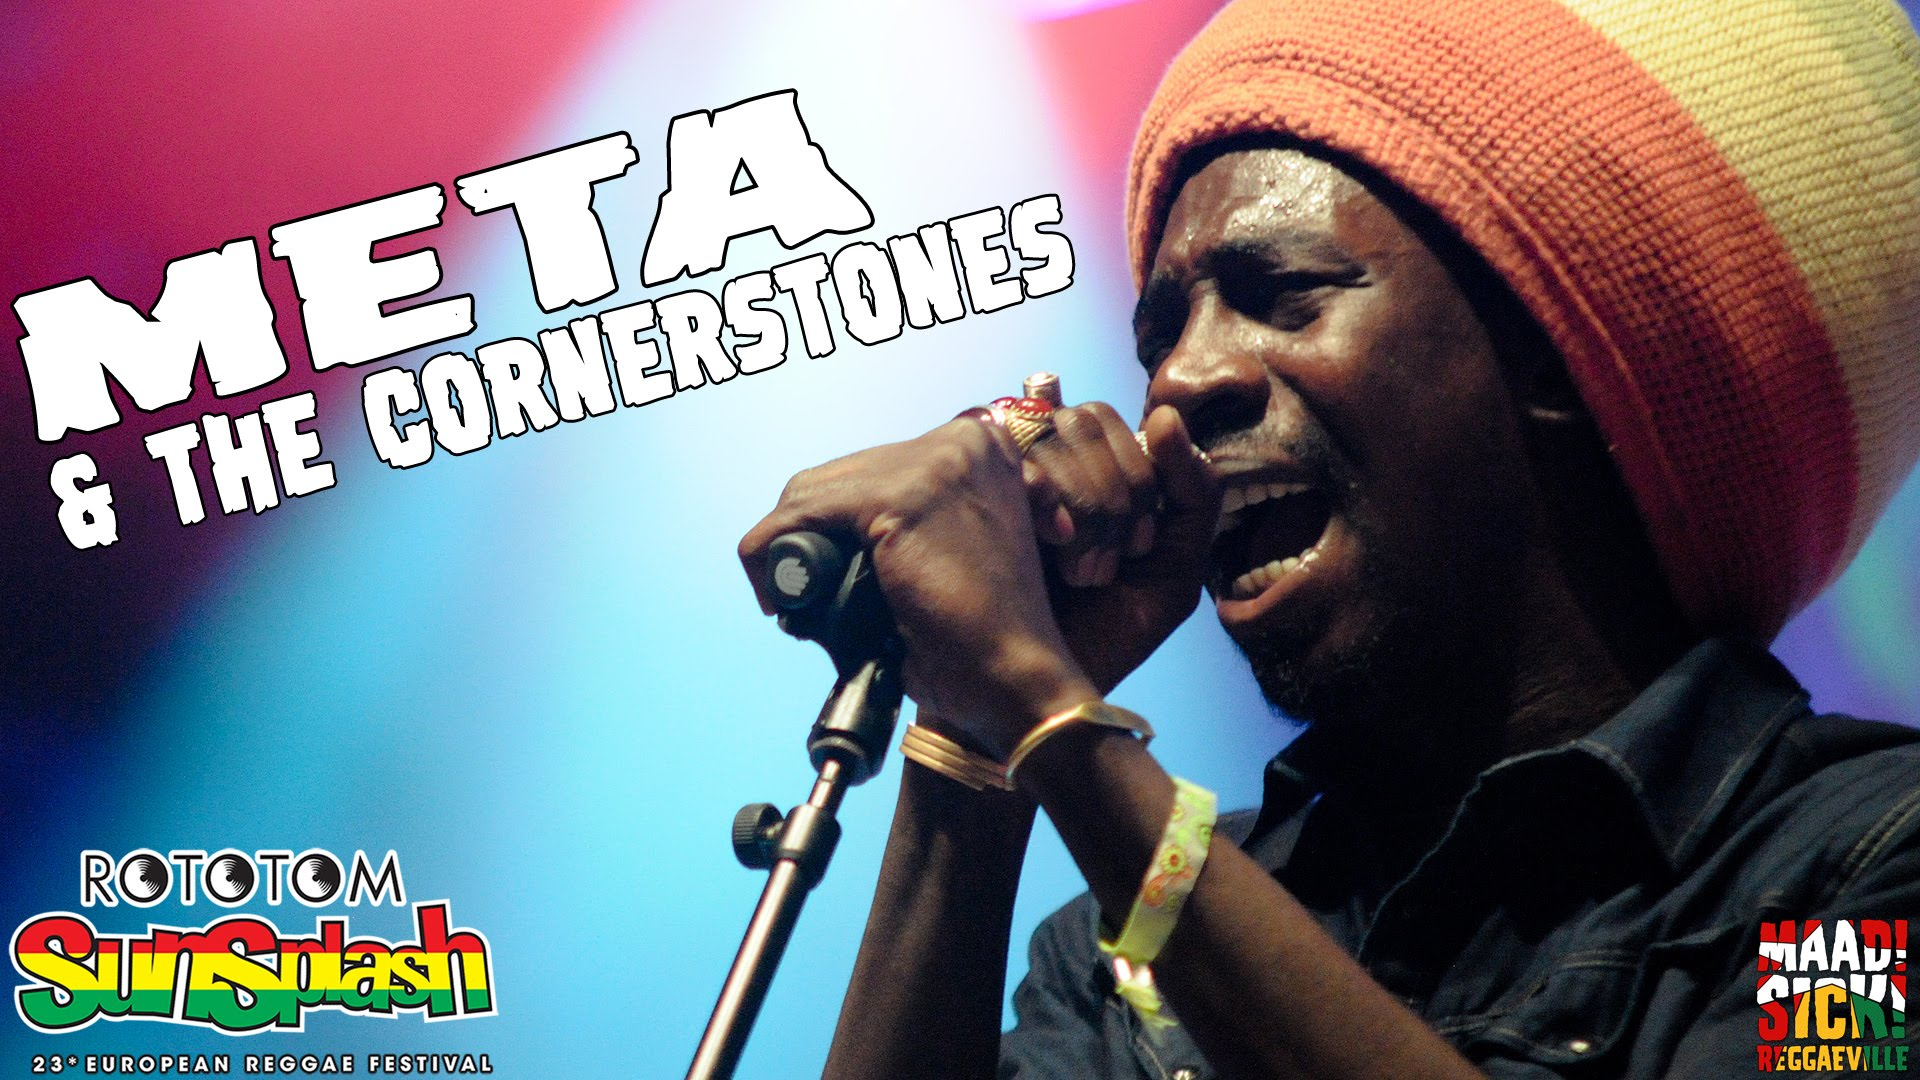 Meta & The Cornerstones @ Rototom Sunsplash 2016 [8/15/2016]